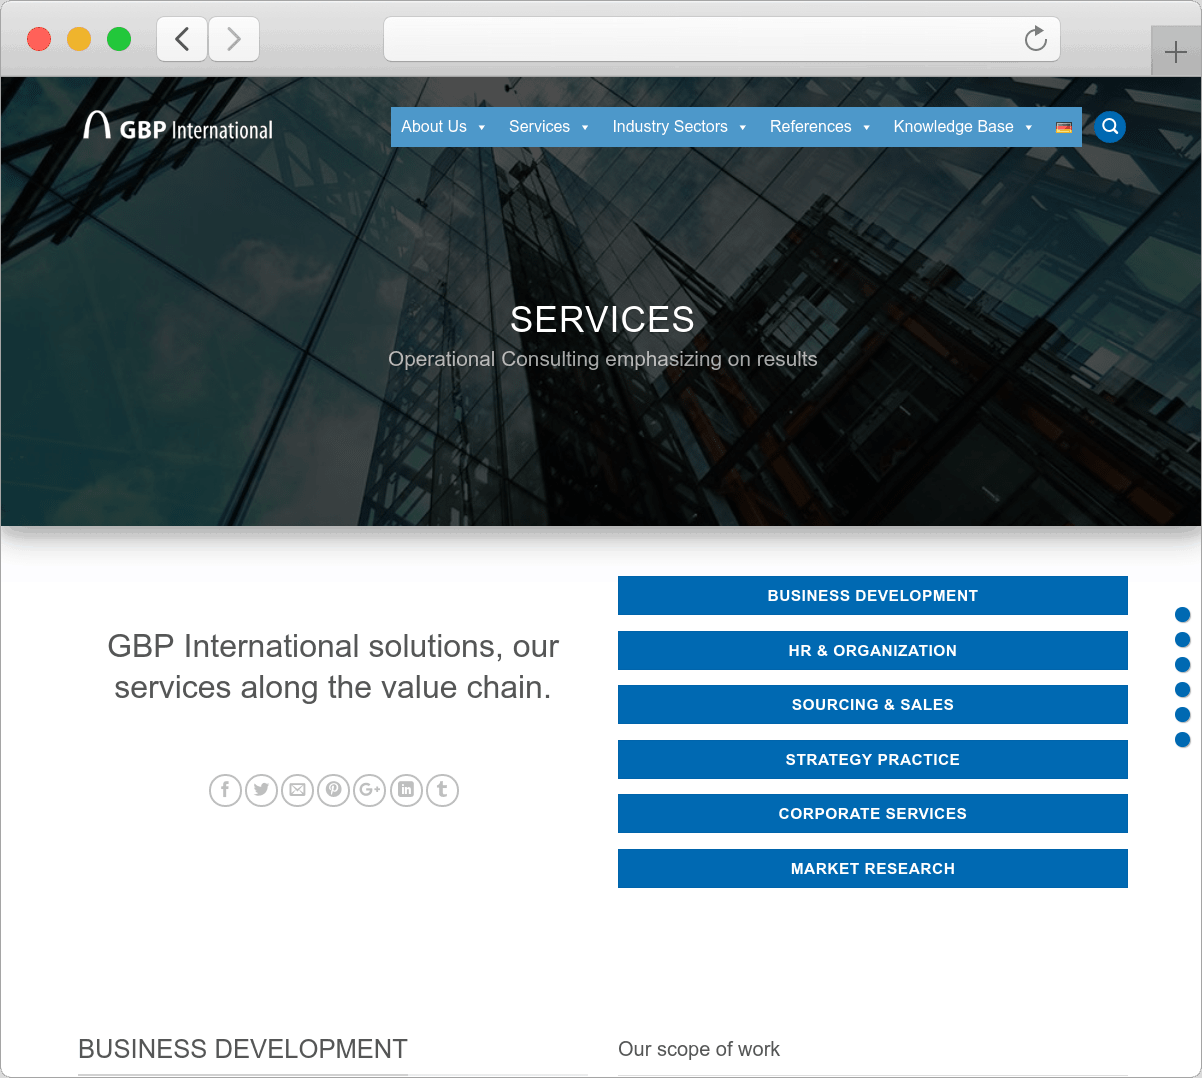 Ultimate Index - Your ROI driven full service SEO - GBP International - 2